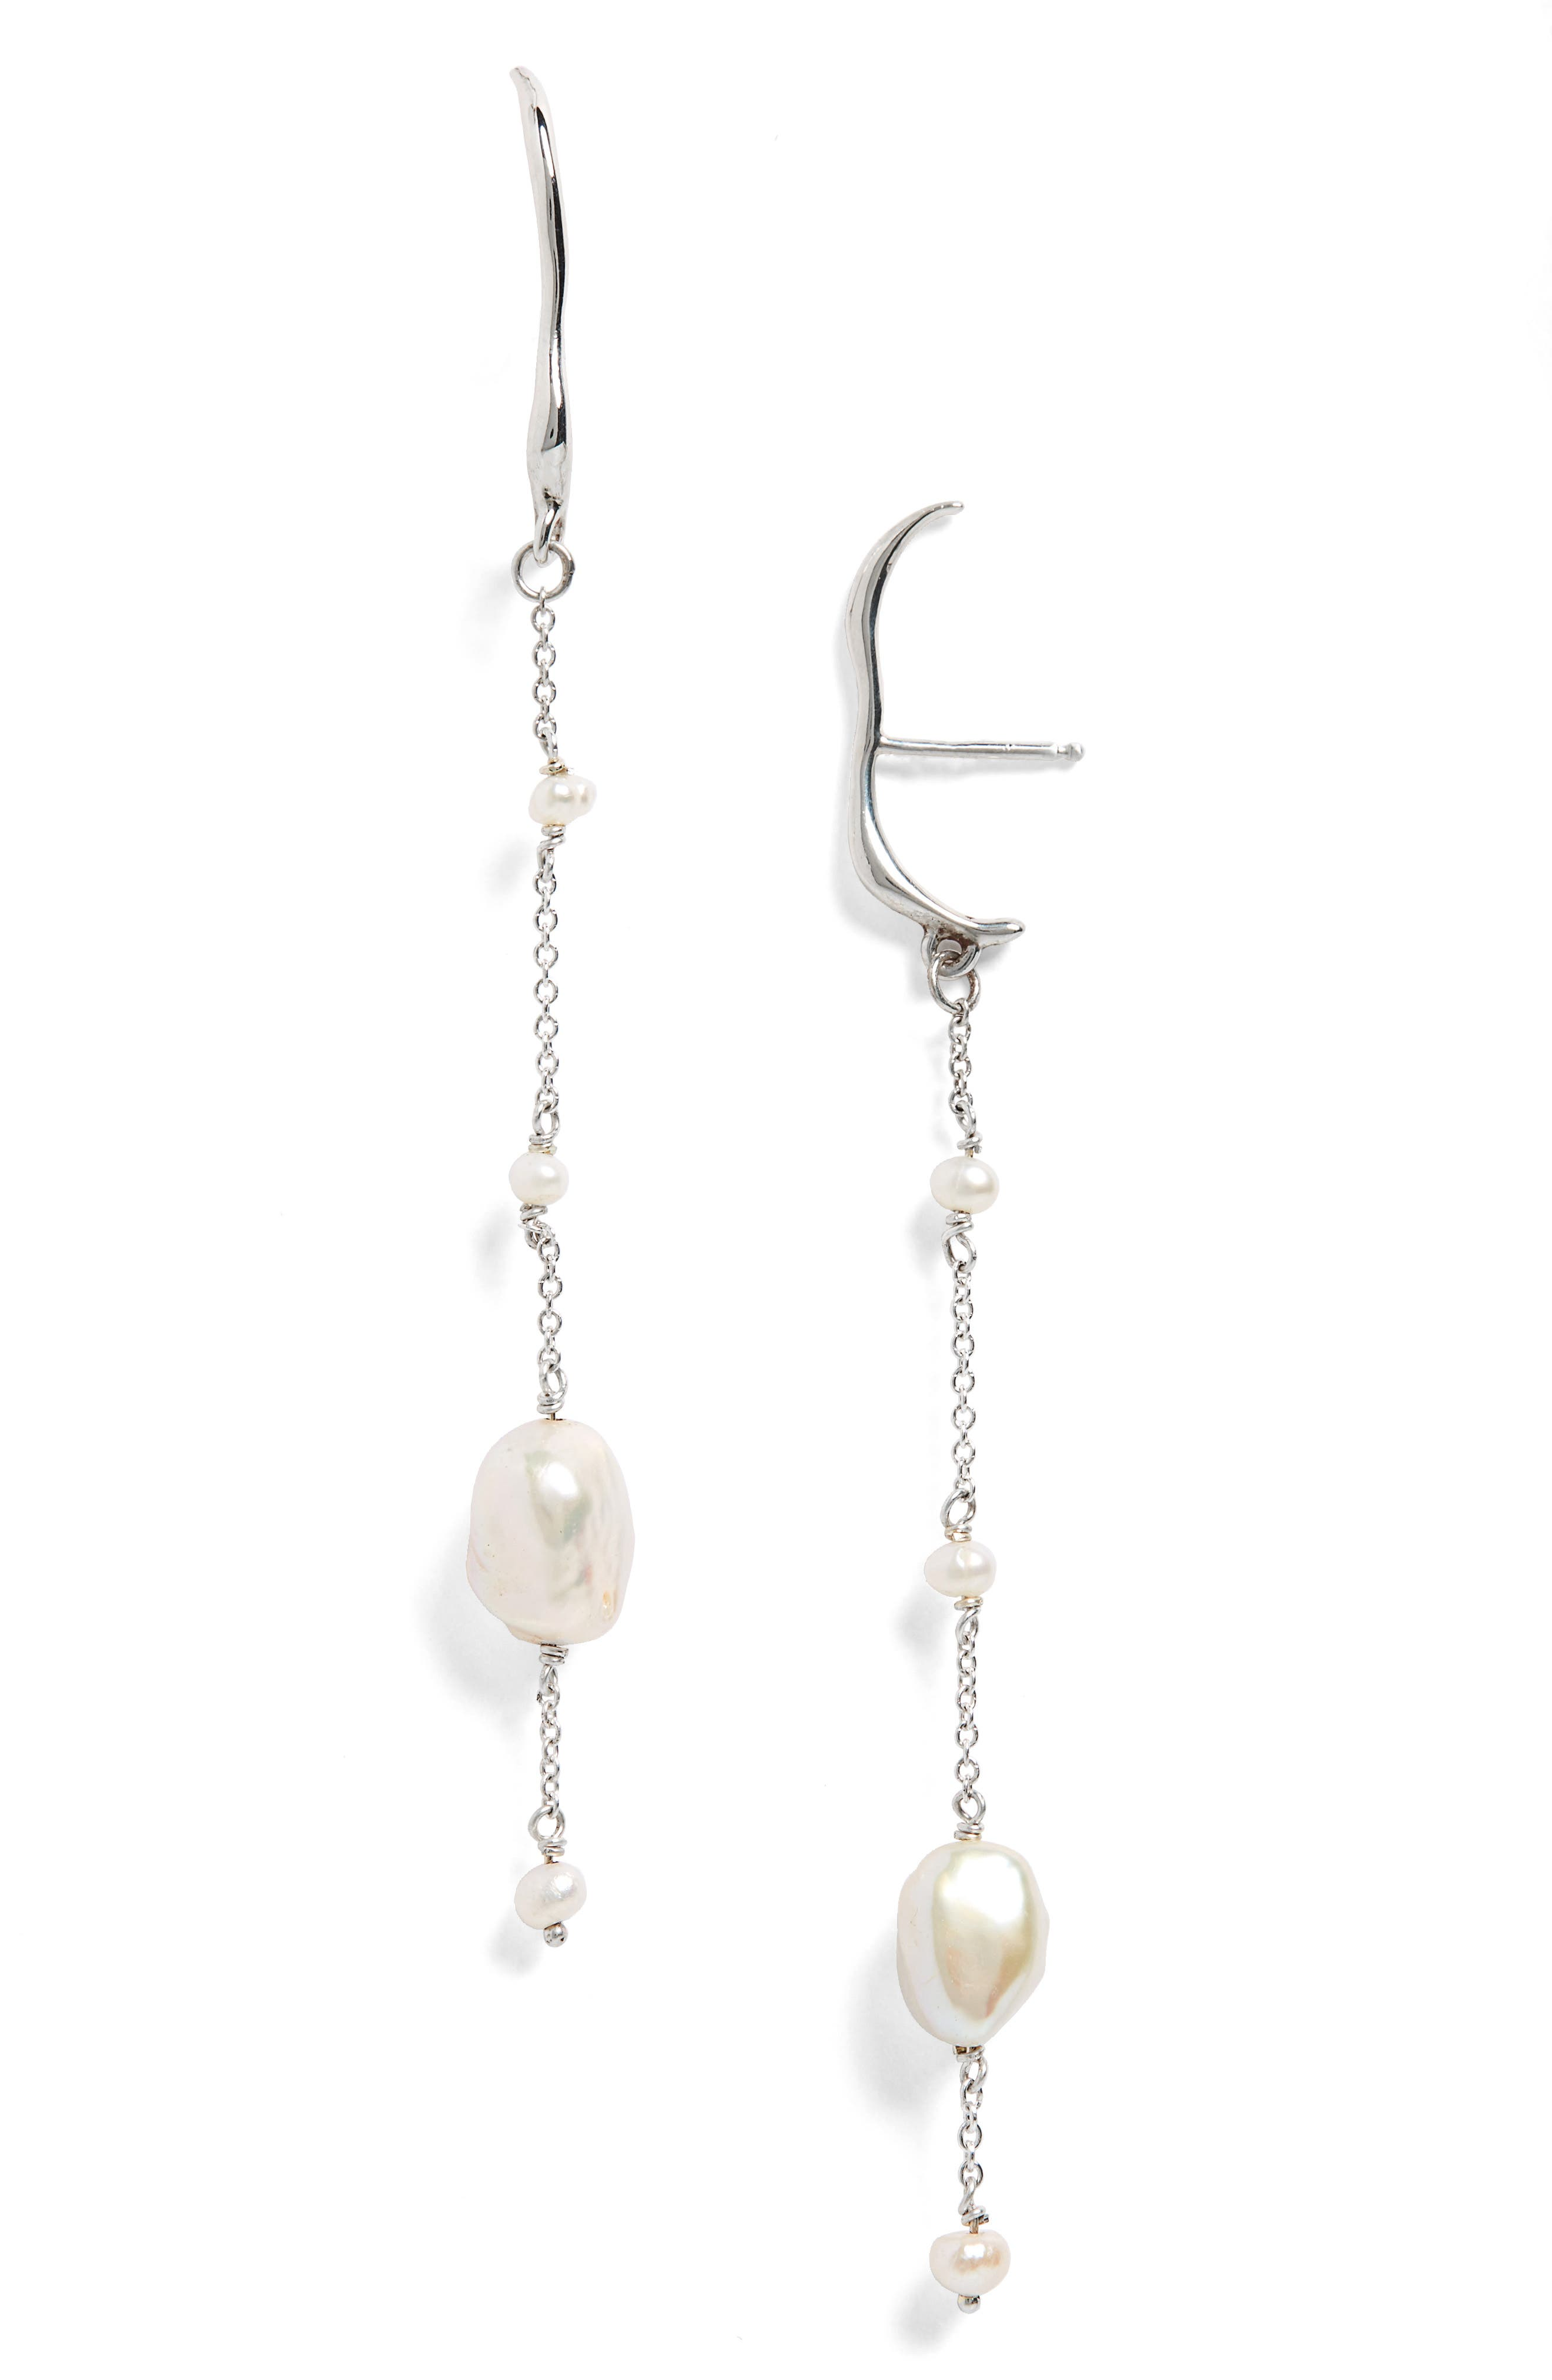 Aura Cultured Pearl Drop Earrings,                         Main,                         color, STERLING SILVER/ WHITE PEARL